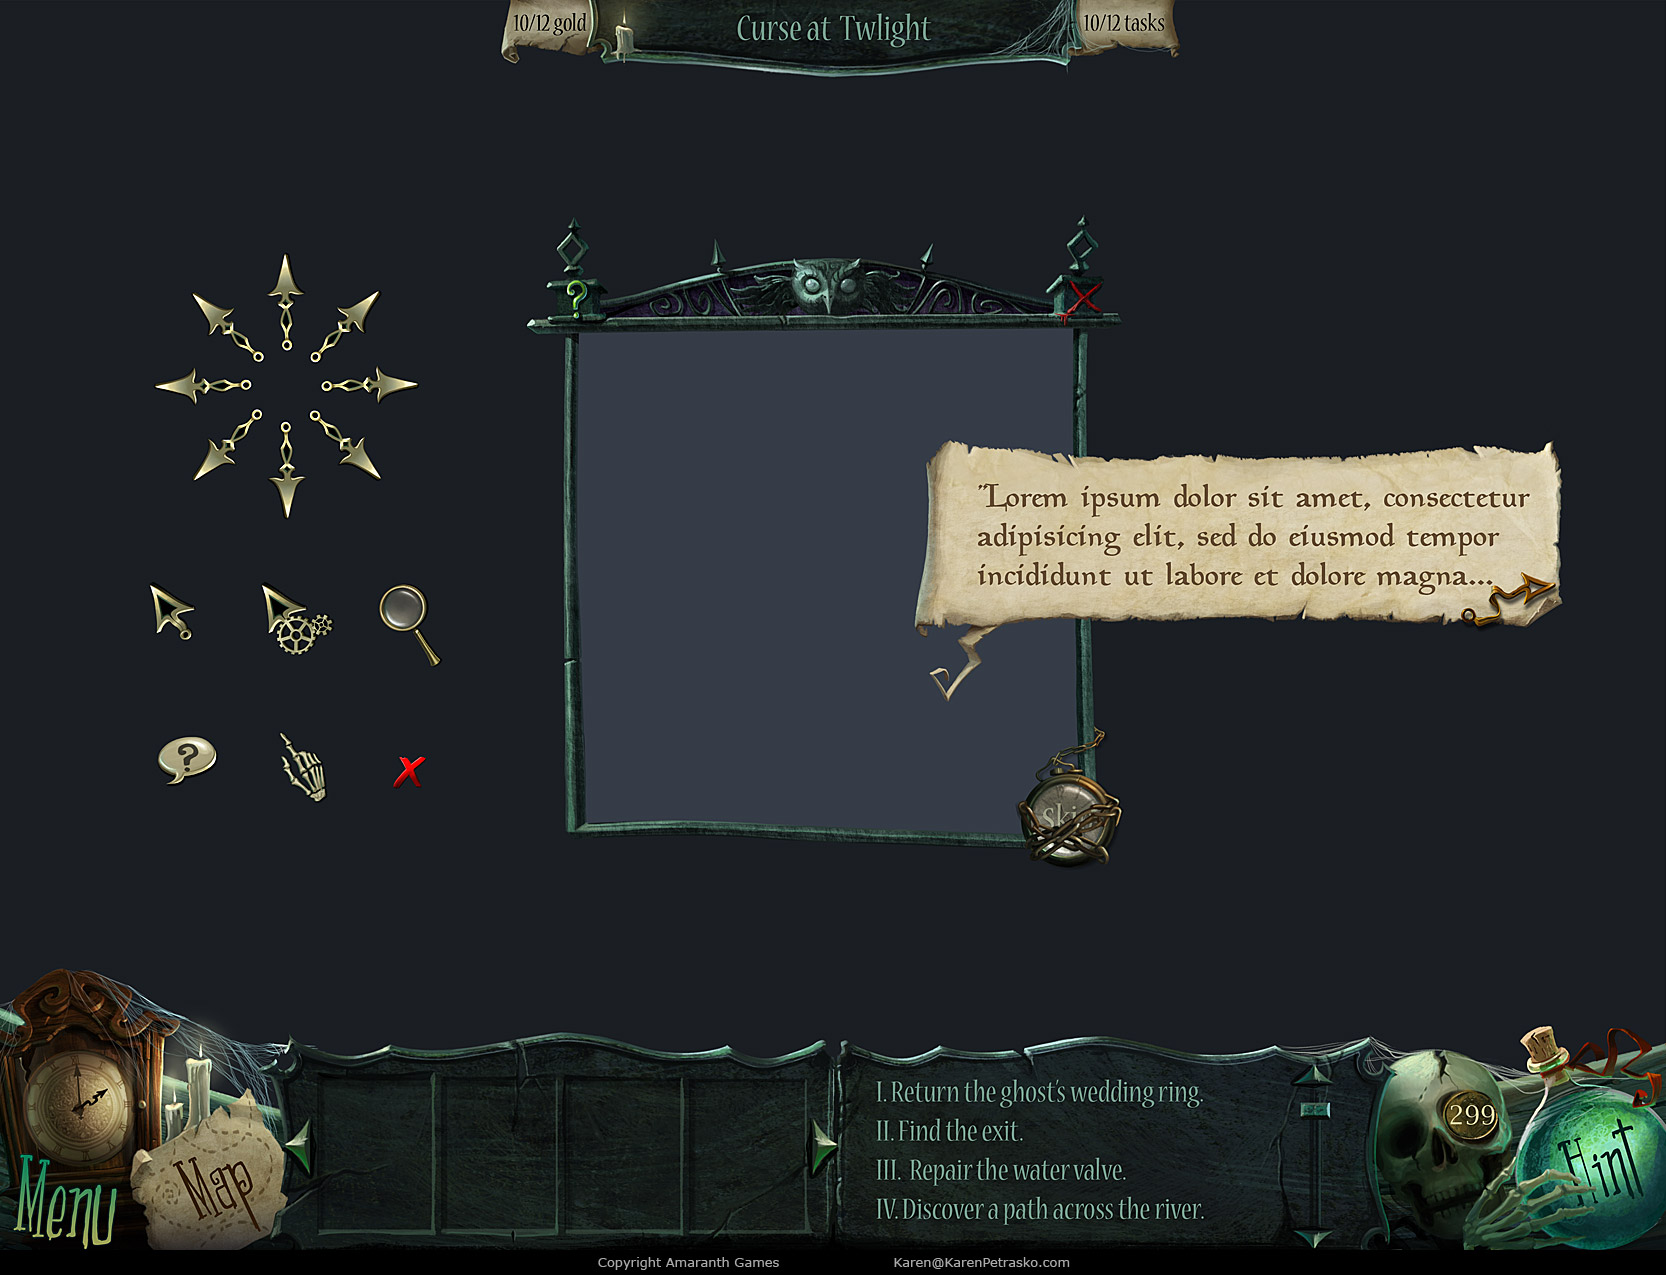 UI elements for Curse at Twilight: Thief of Souls